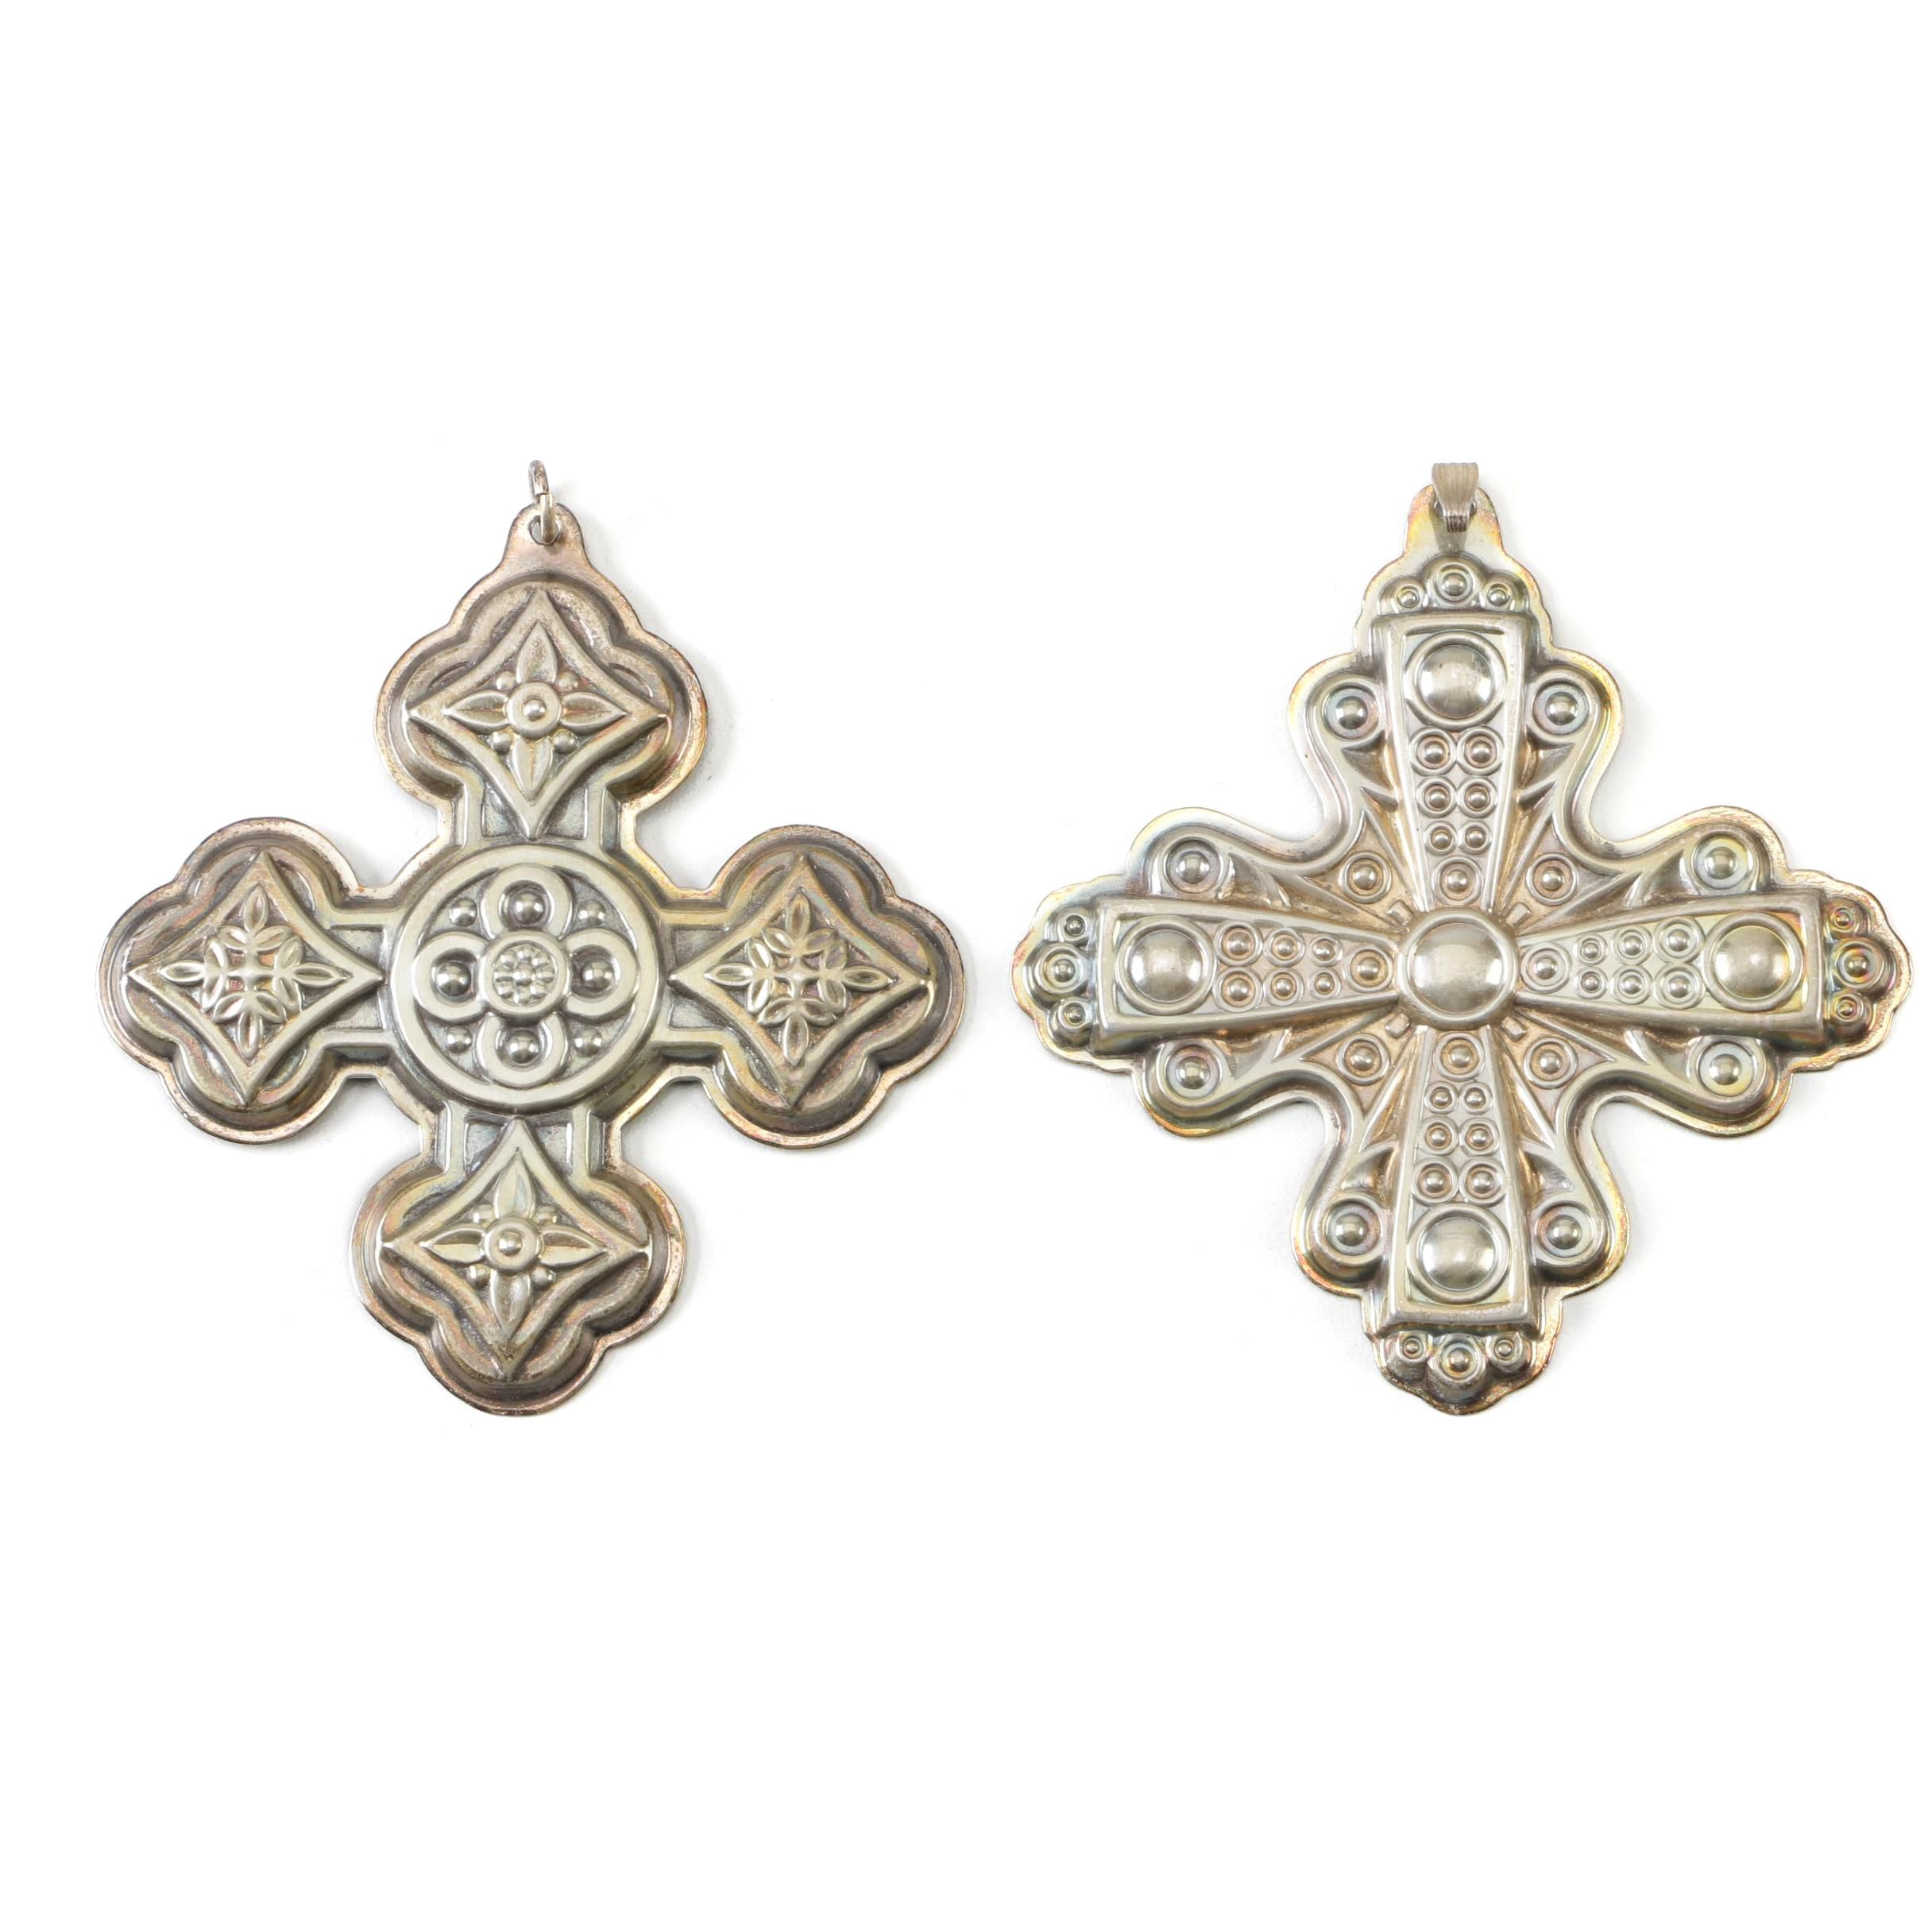 "Reed & Barton ""Christmas Cross"" Annual Sterling Ornaments, 1971 - 1972"